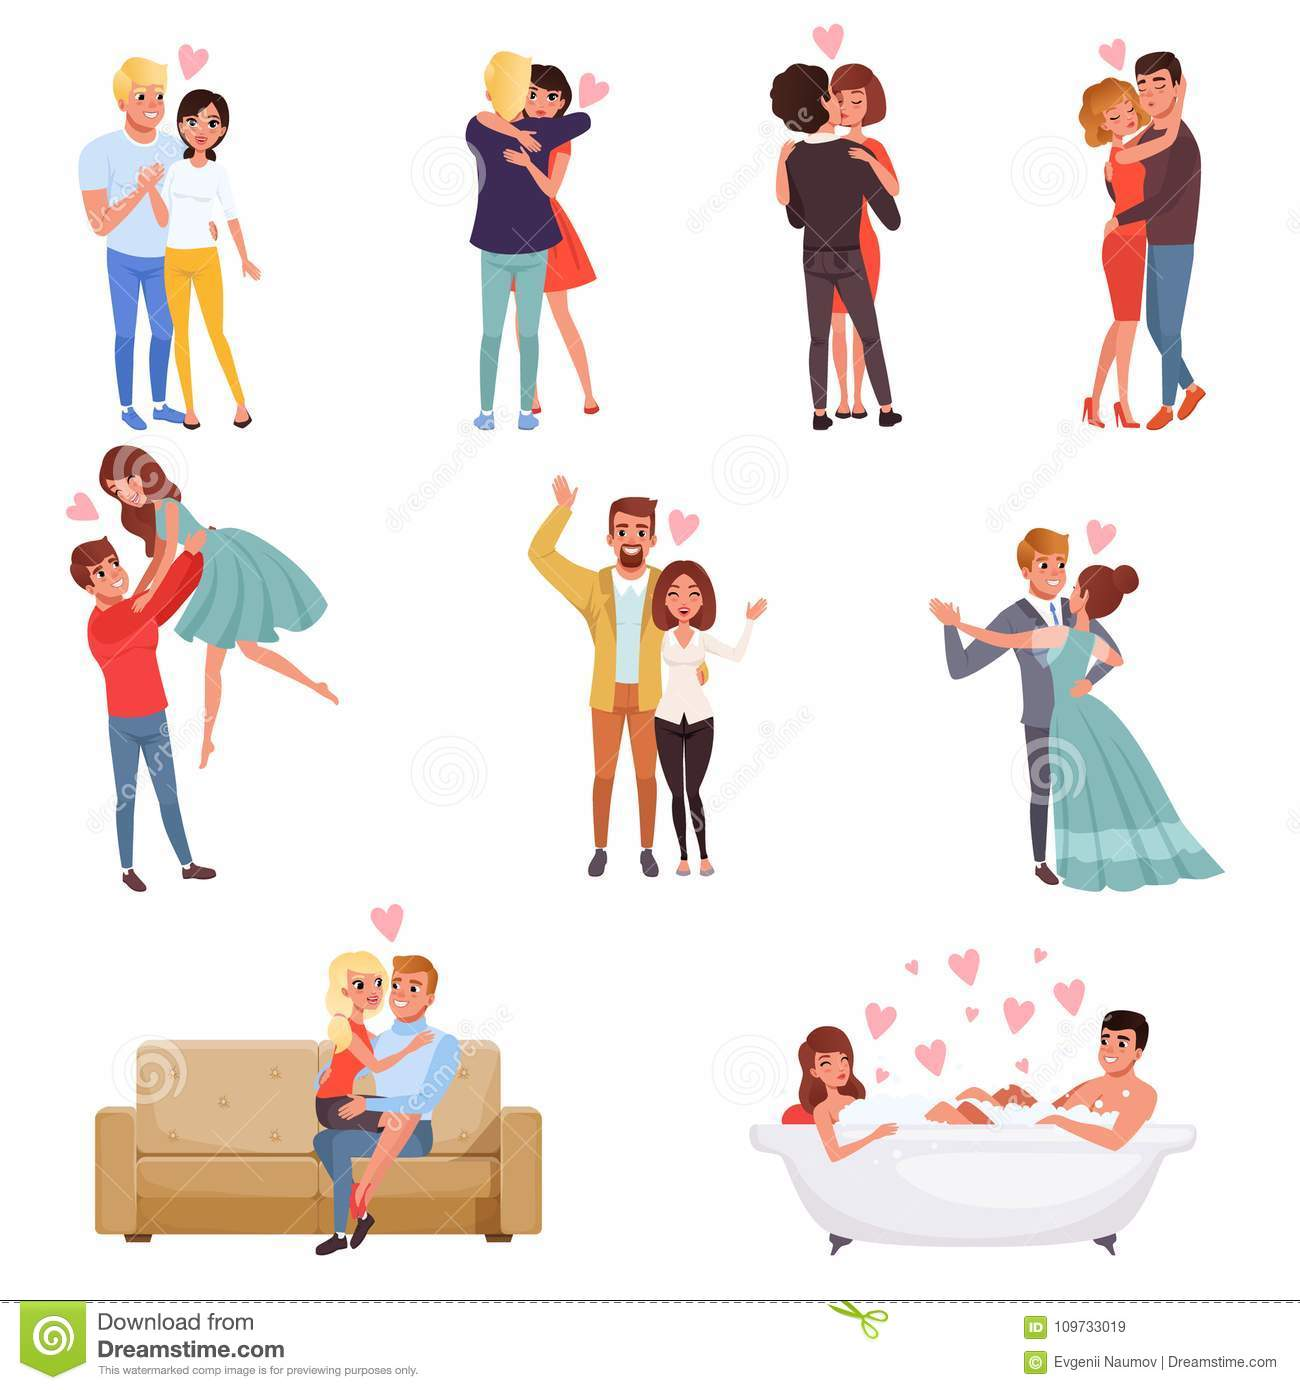 Young Men And Women Characters Embracing Dancing And Kissing Set